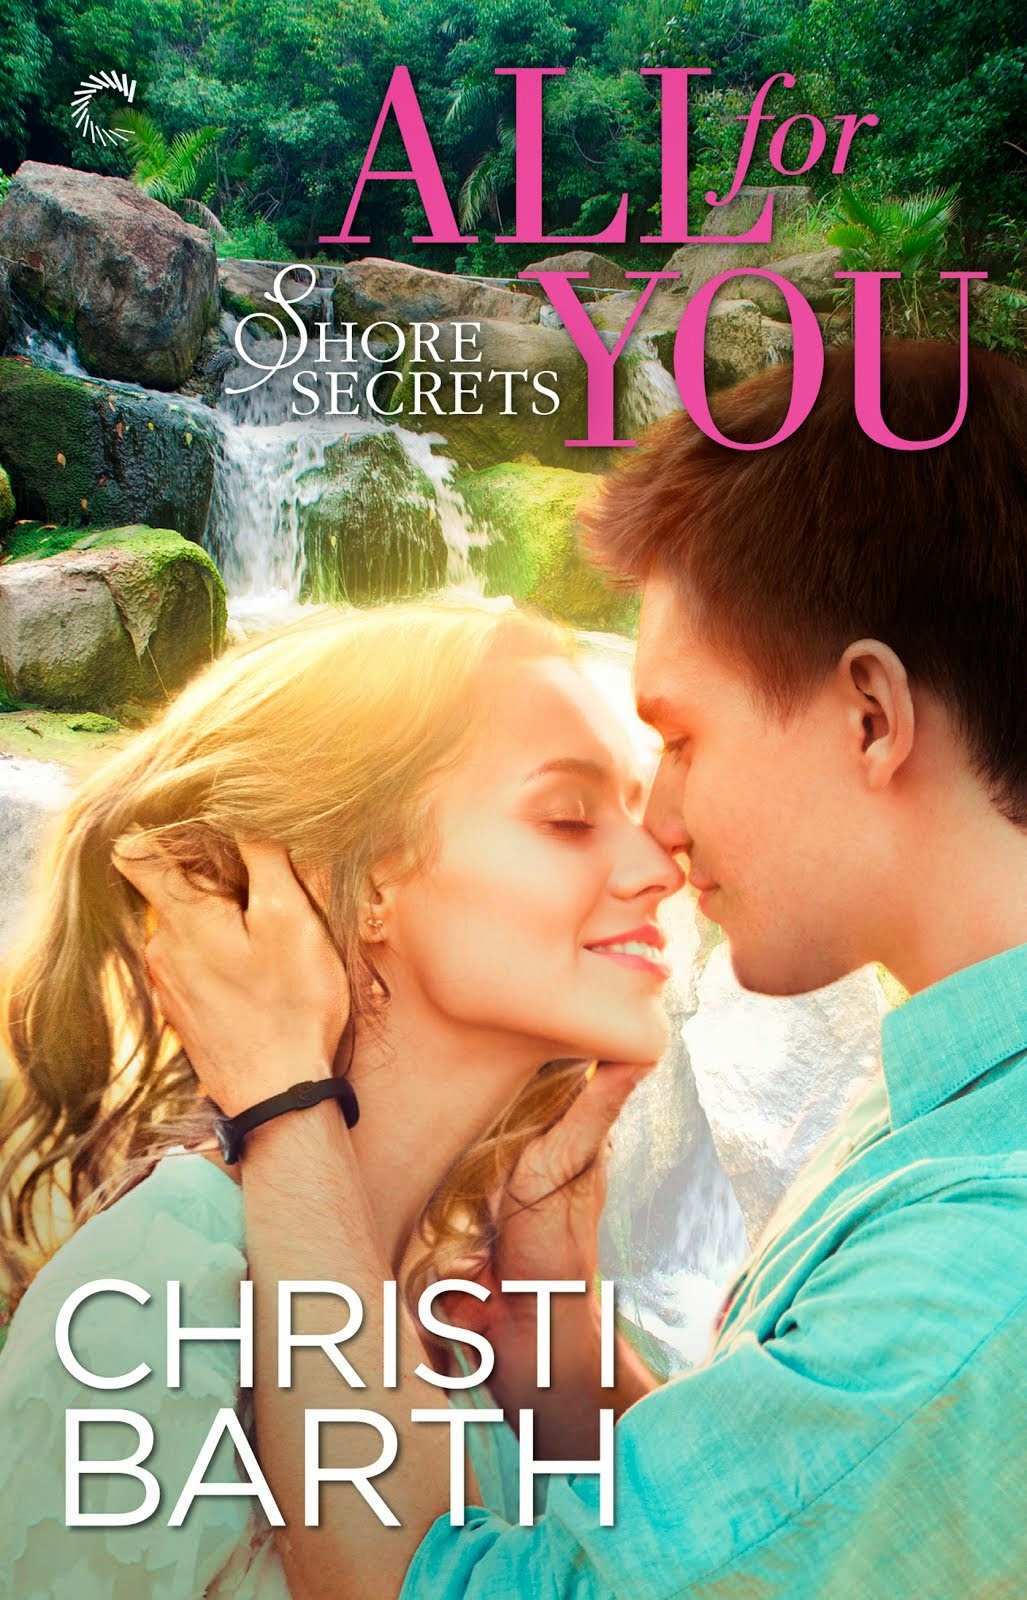 Book 2 Shore Secrets Trilogy